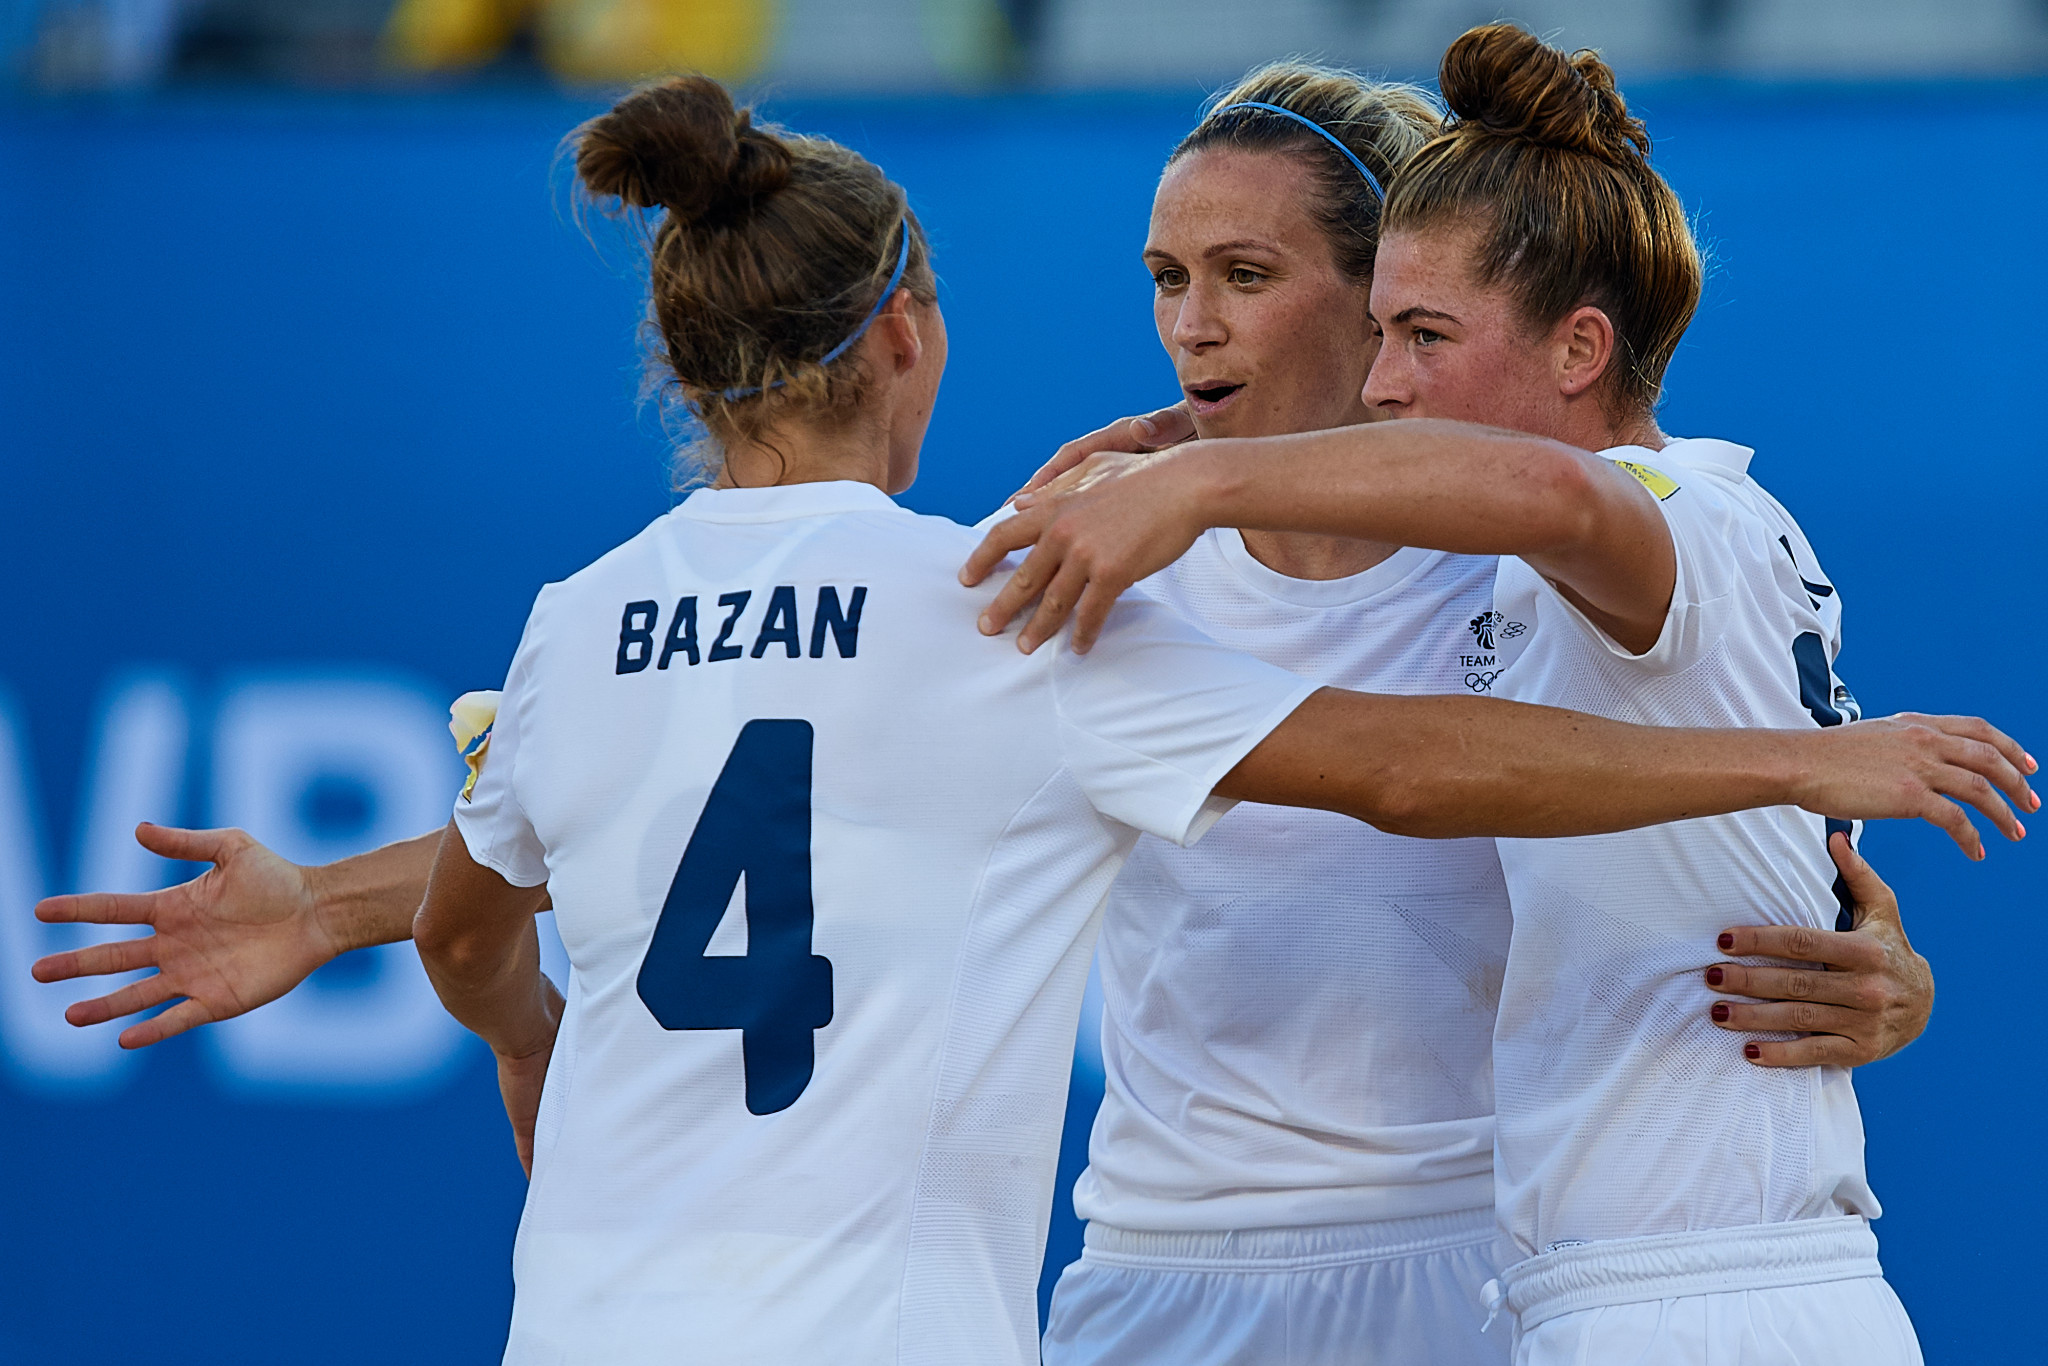 Britain battled back to beat Brazil in the women's beach soccer semi-finals ©ANOC